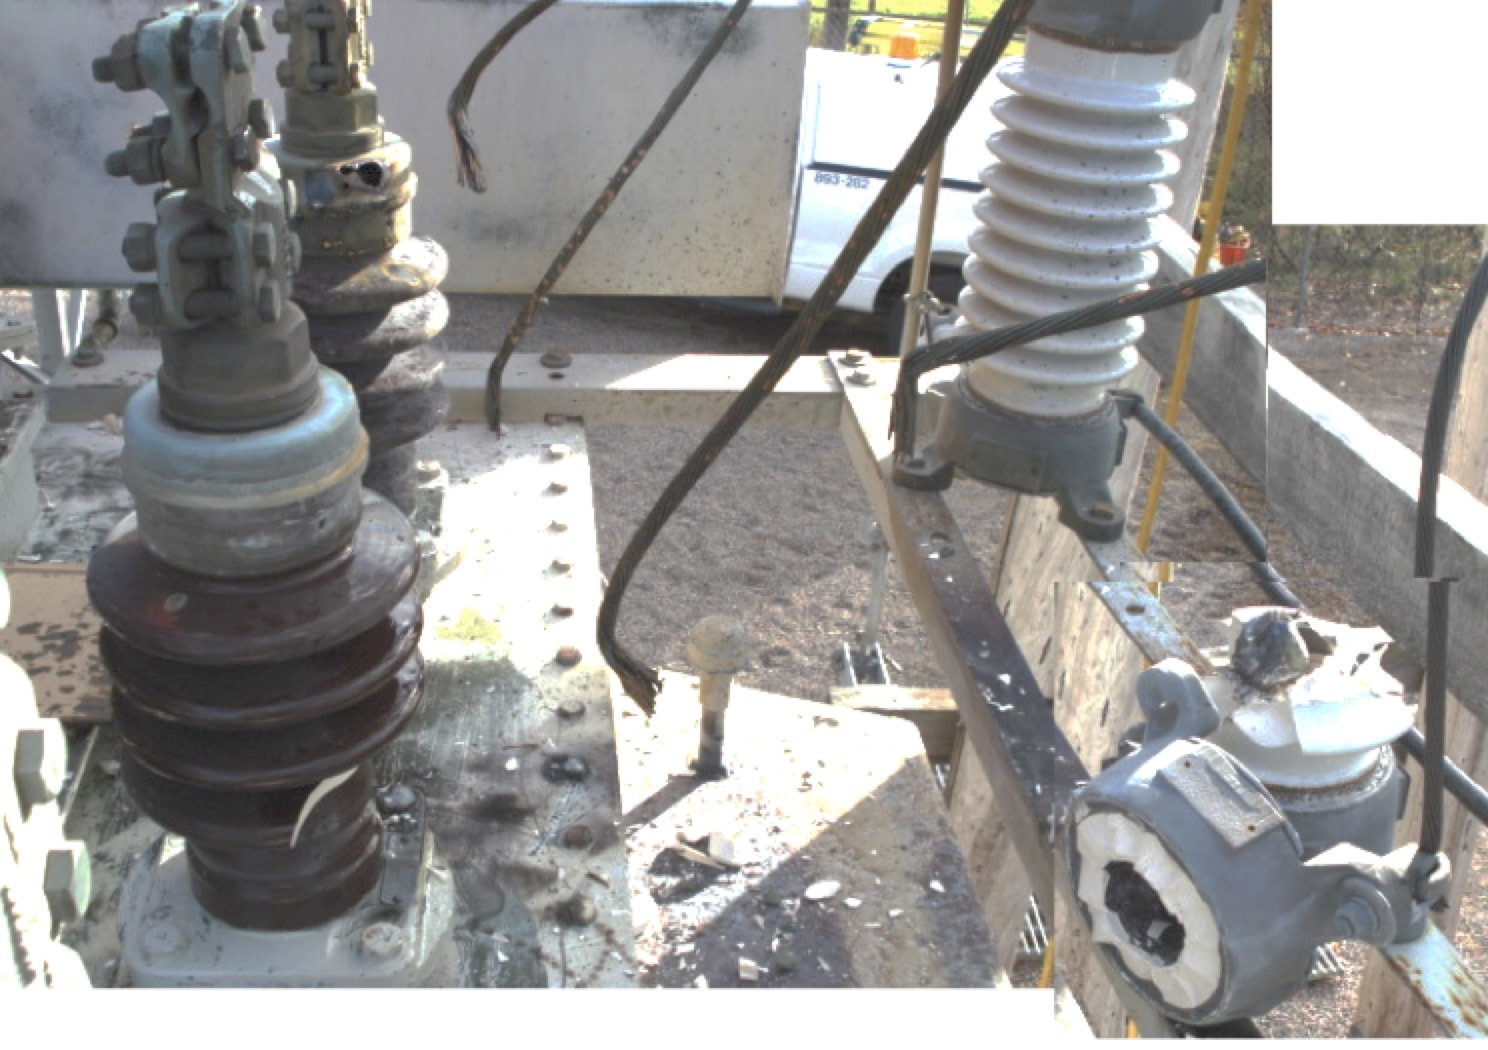 Applying Surge Protection: Experience at Hydro One in Canada Blown porcelain arrester damaged bushings on adjacent transformer